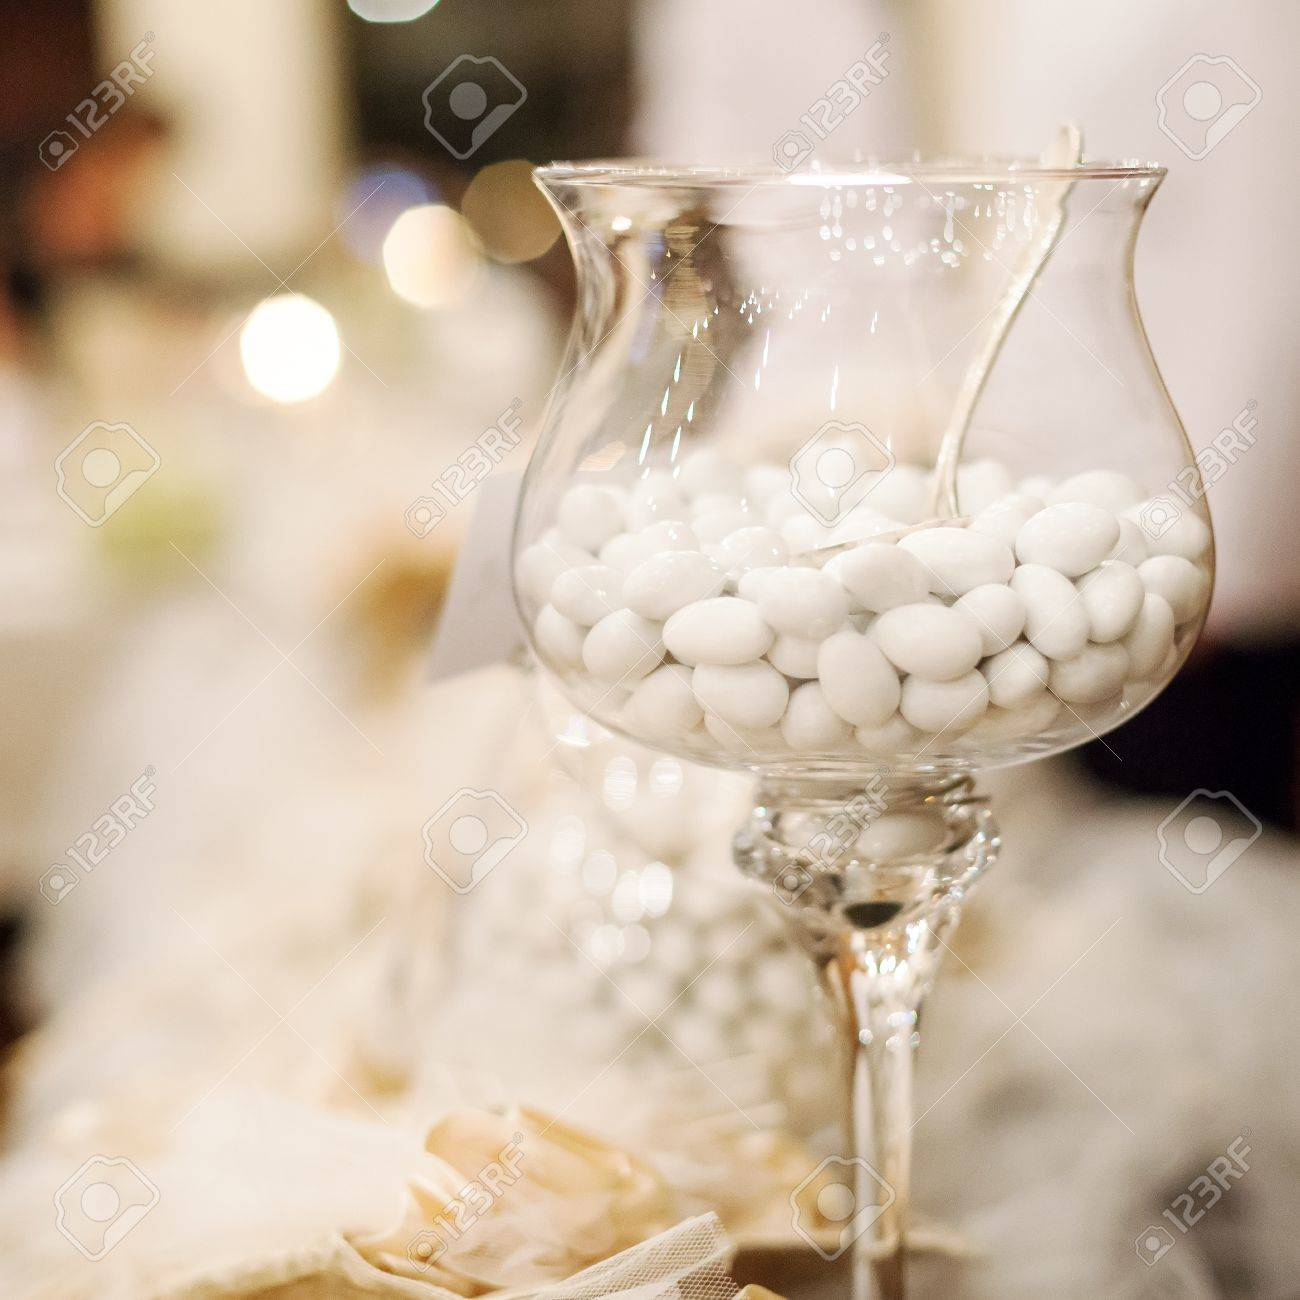 white candy for a wedding Stock Photo - 19583469